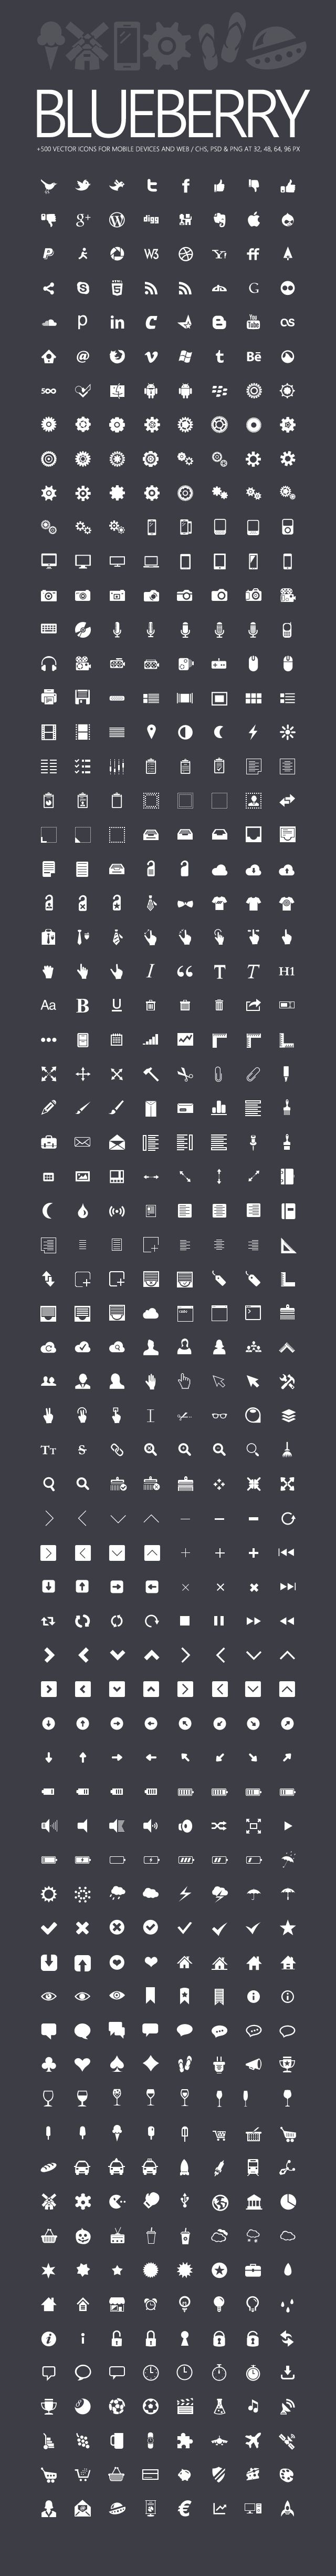 Blueberry - 500+ Icons